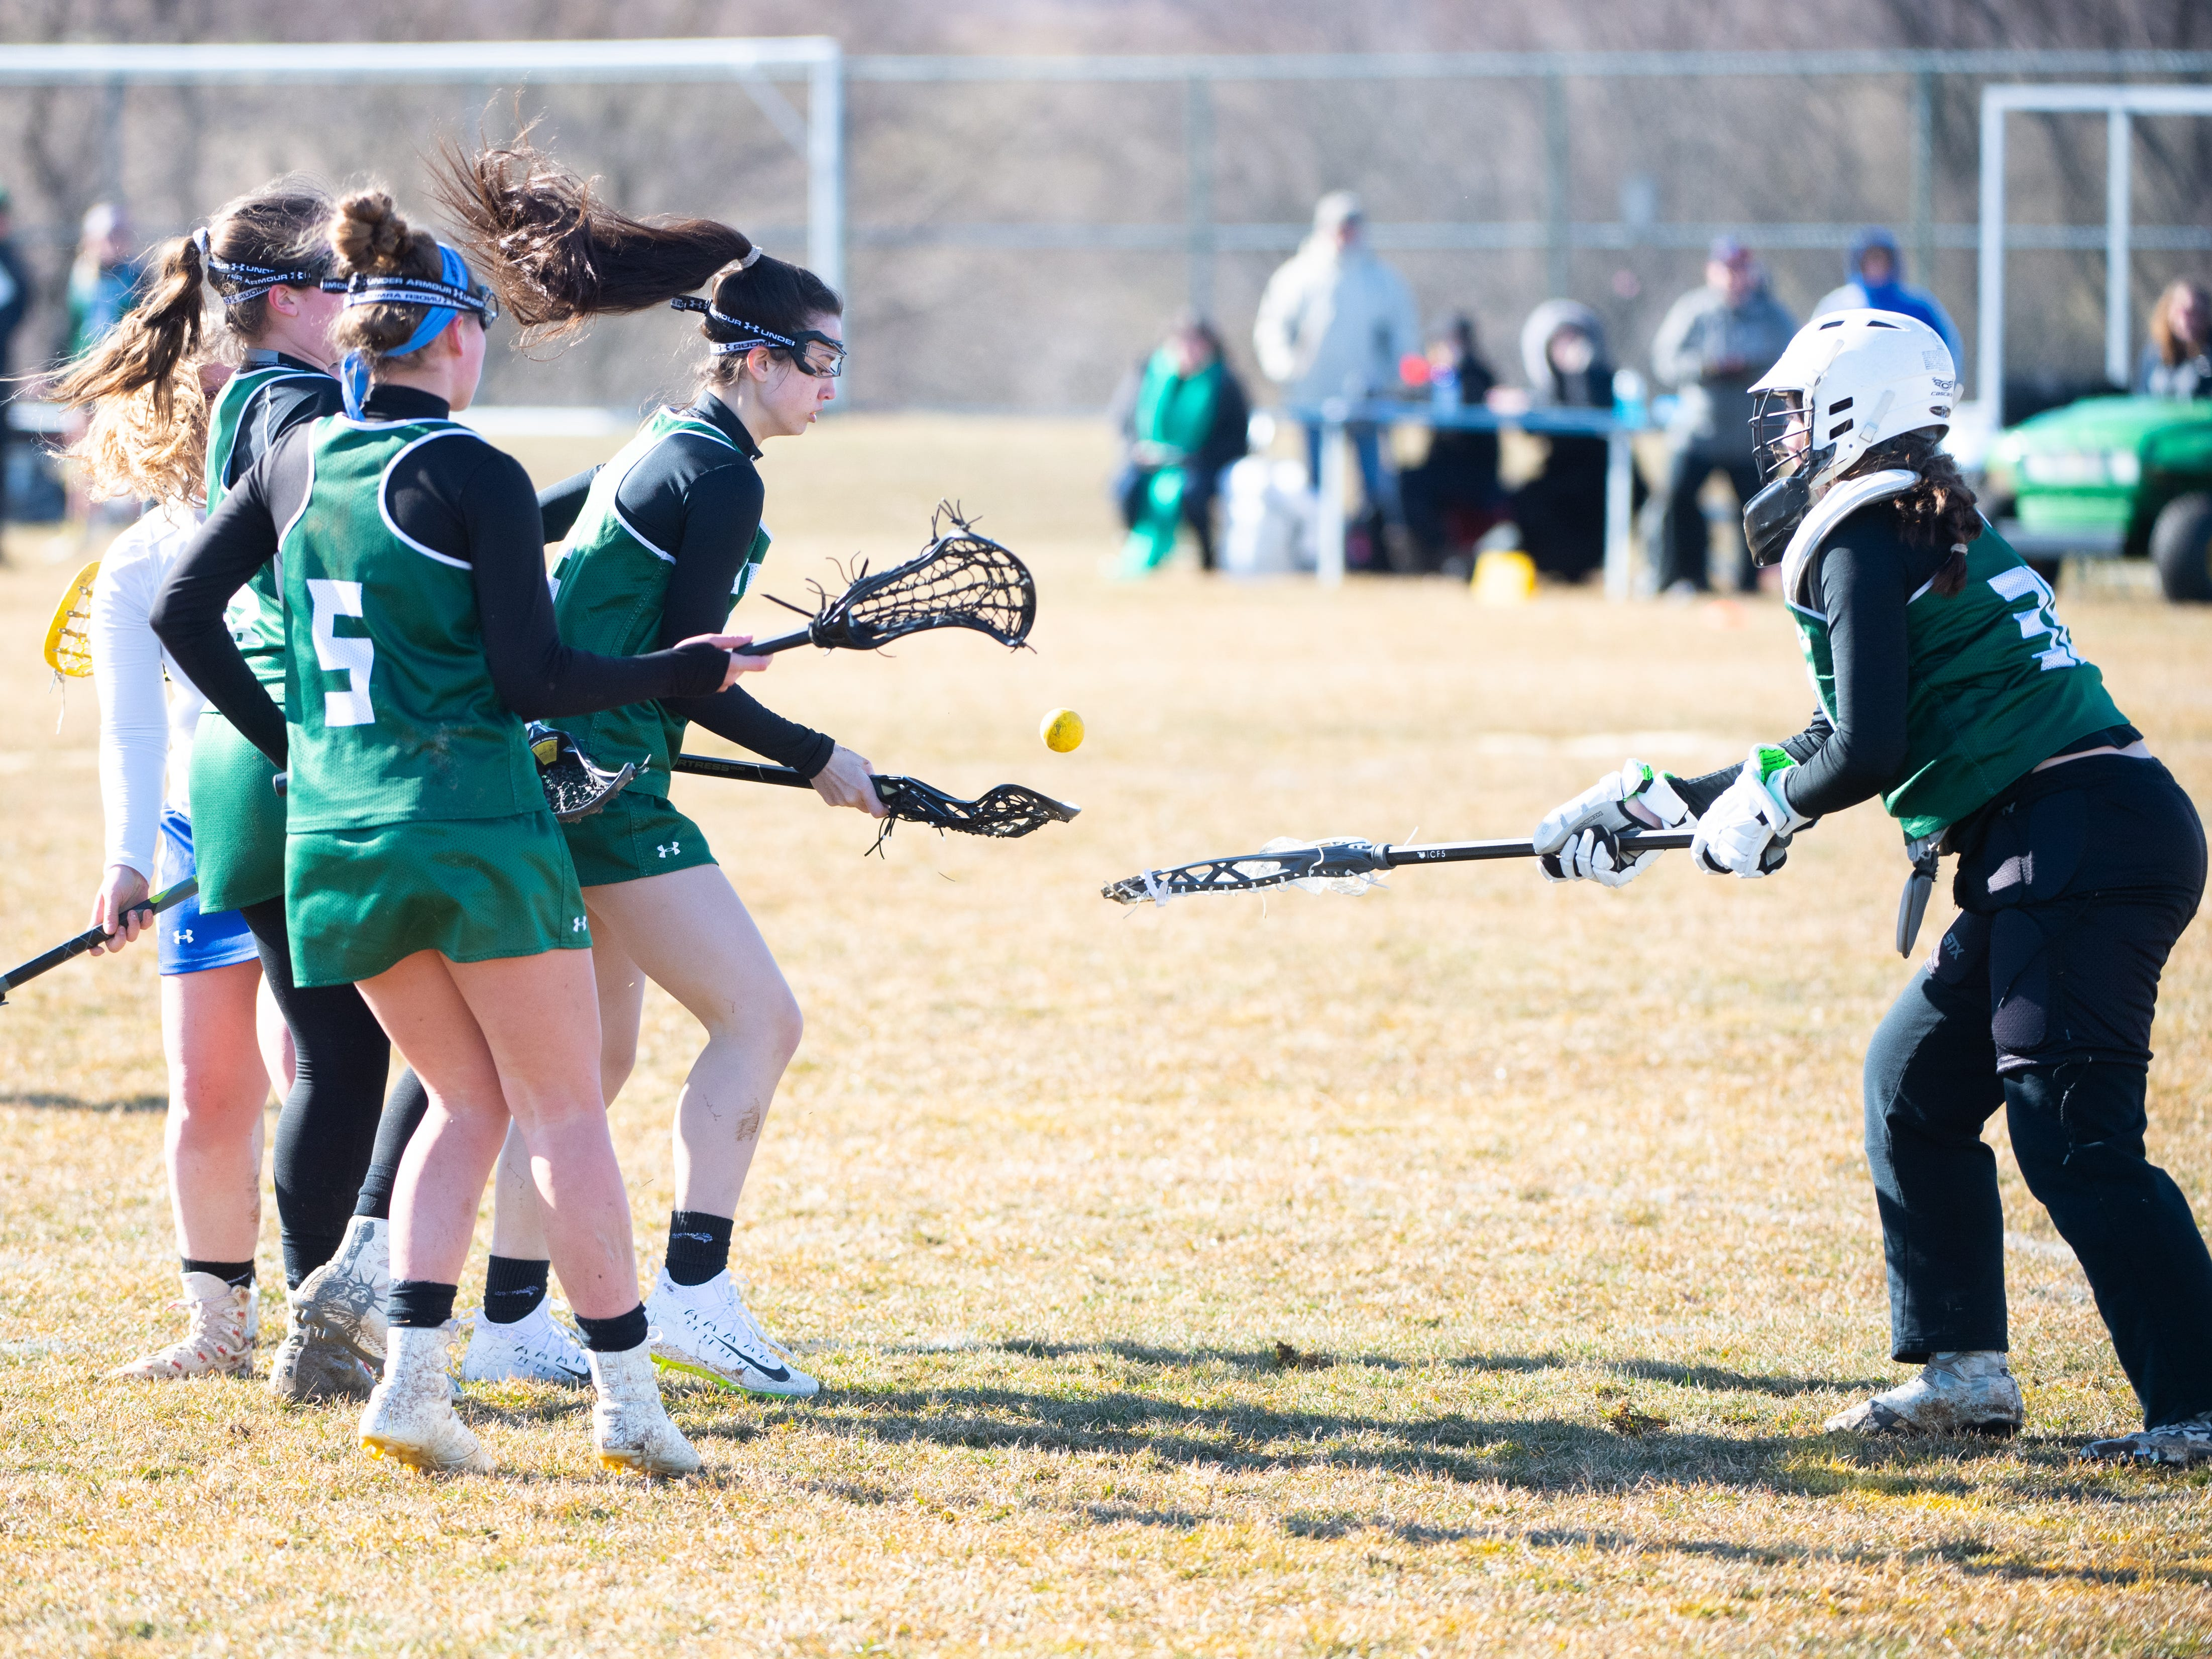 York Catholic looks to get the ball out of their zone the ball during the girls' lacrosse game between Kennard-Dale and York Catholic, March 26, 2019 at Kennard-Dale High School. The Fighting Irish defeated the Rams 10 to 9.